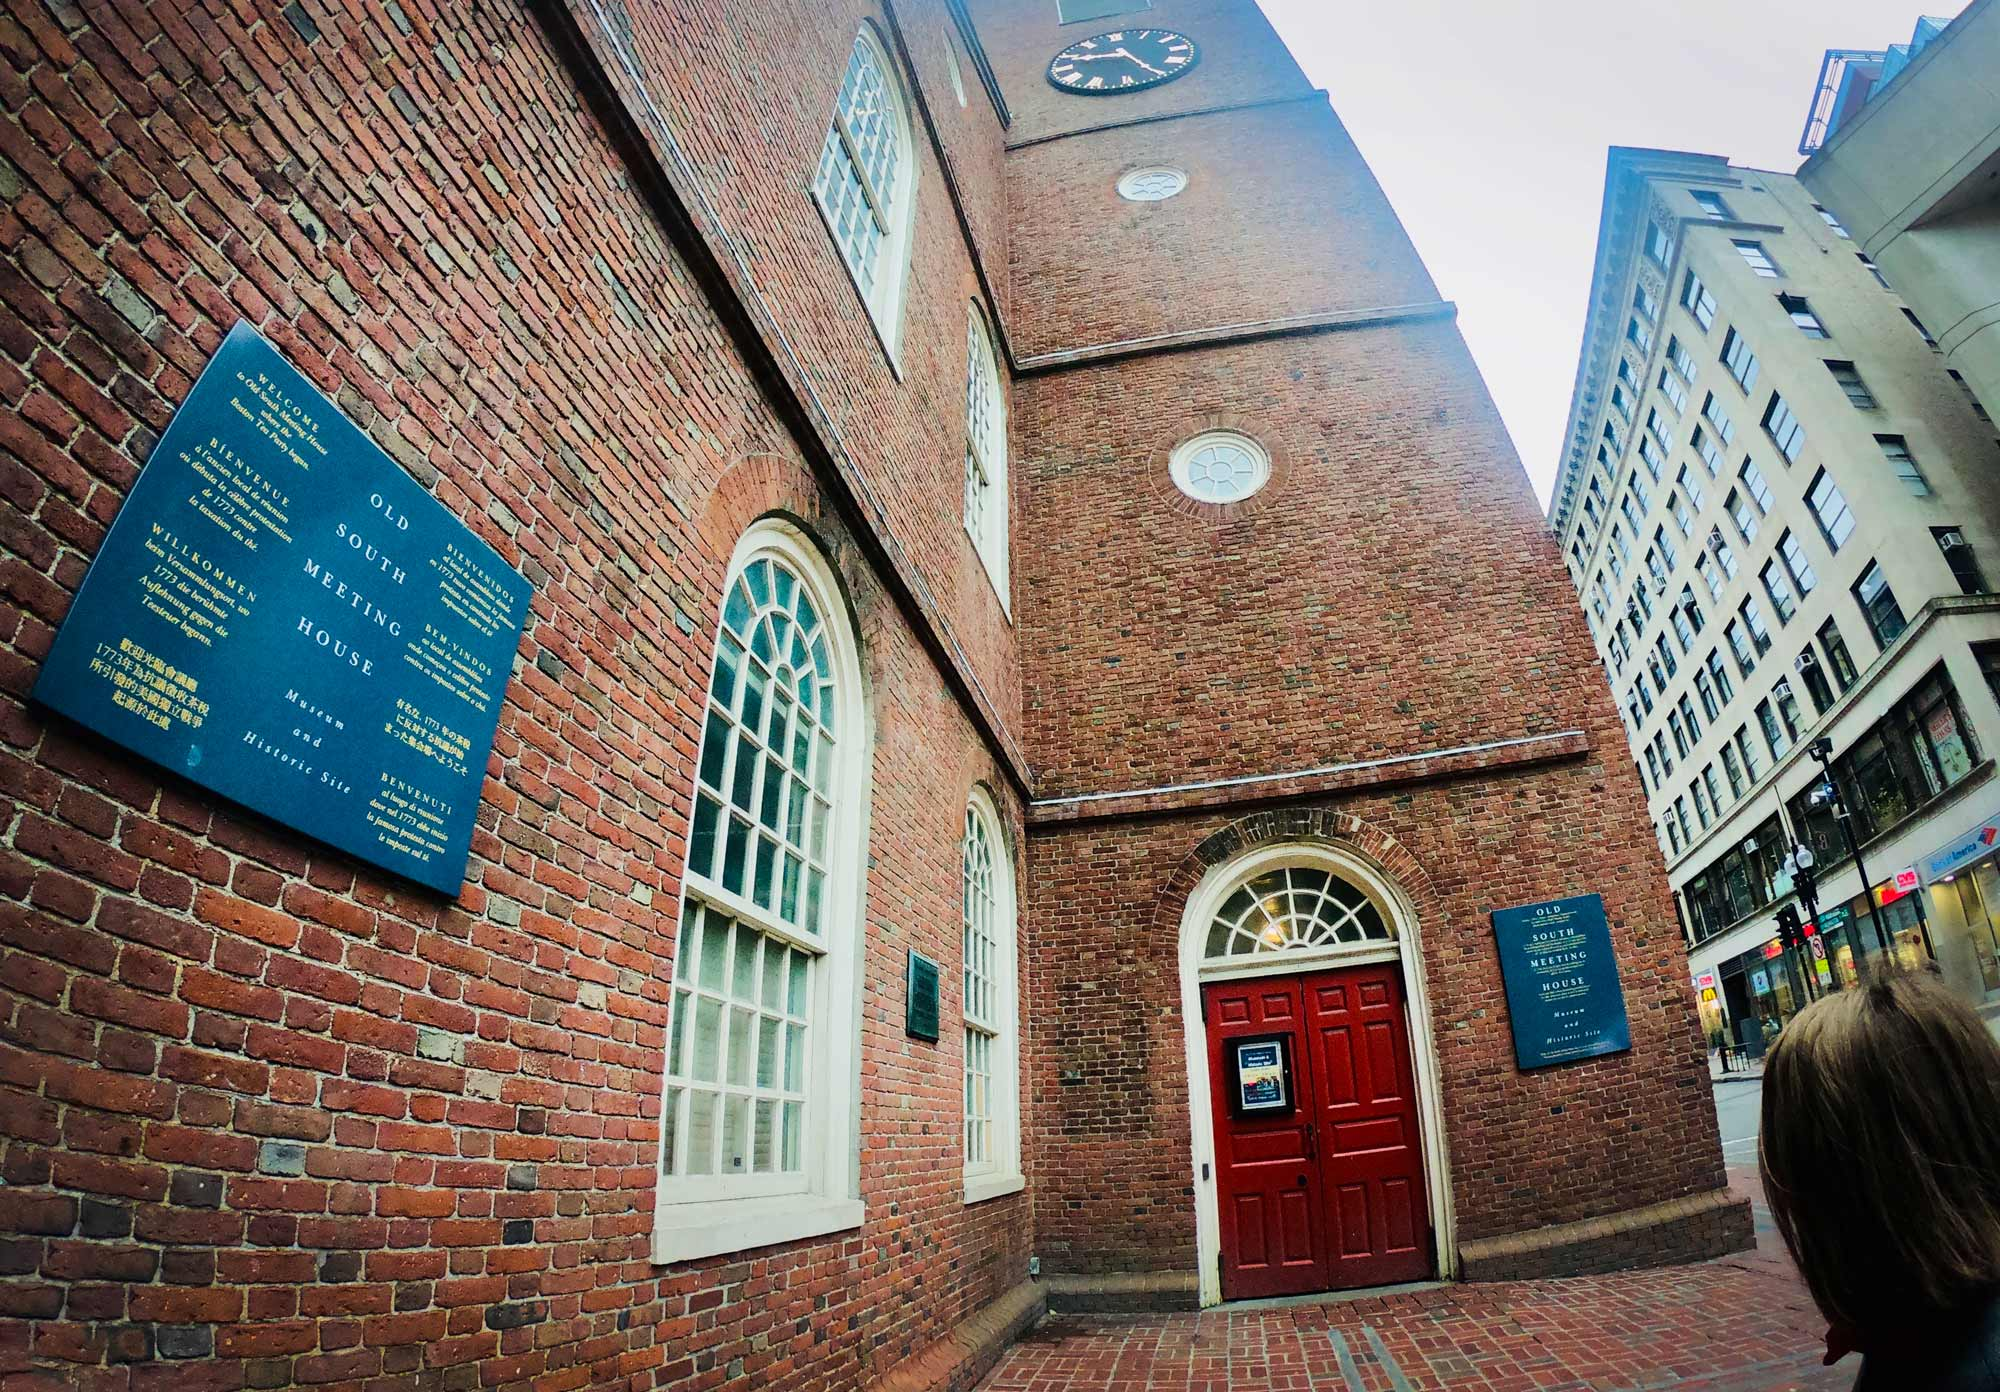 Exterior brick view of Old South Meeting House on Freedom Trail in Boston, Massachusetts